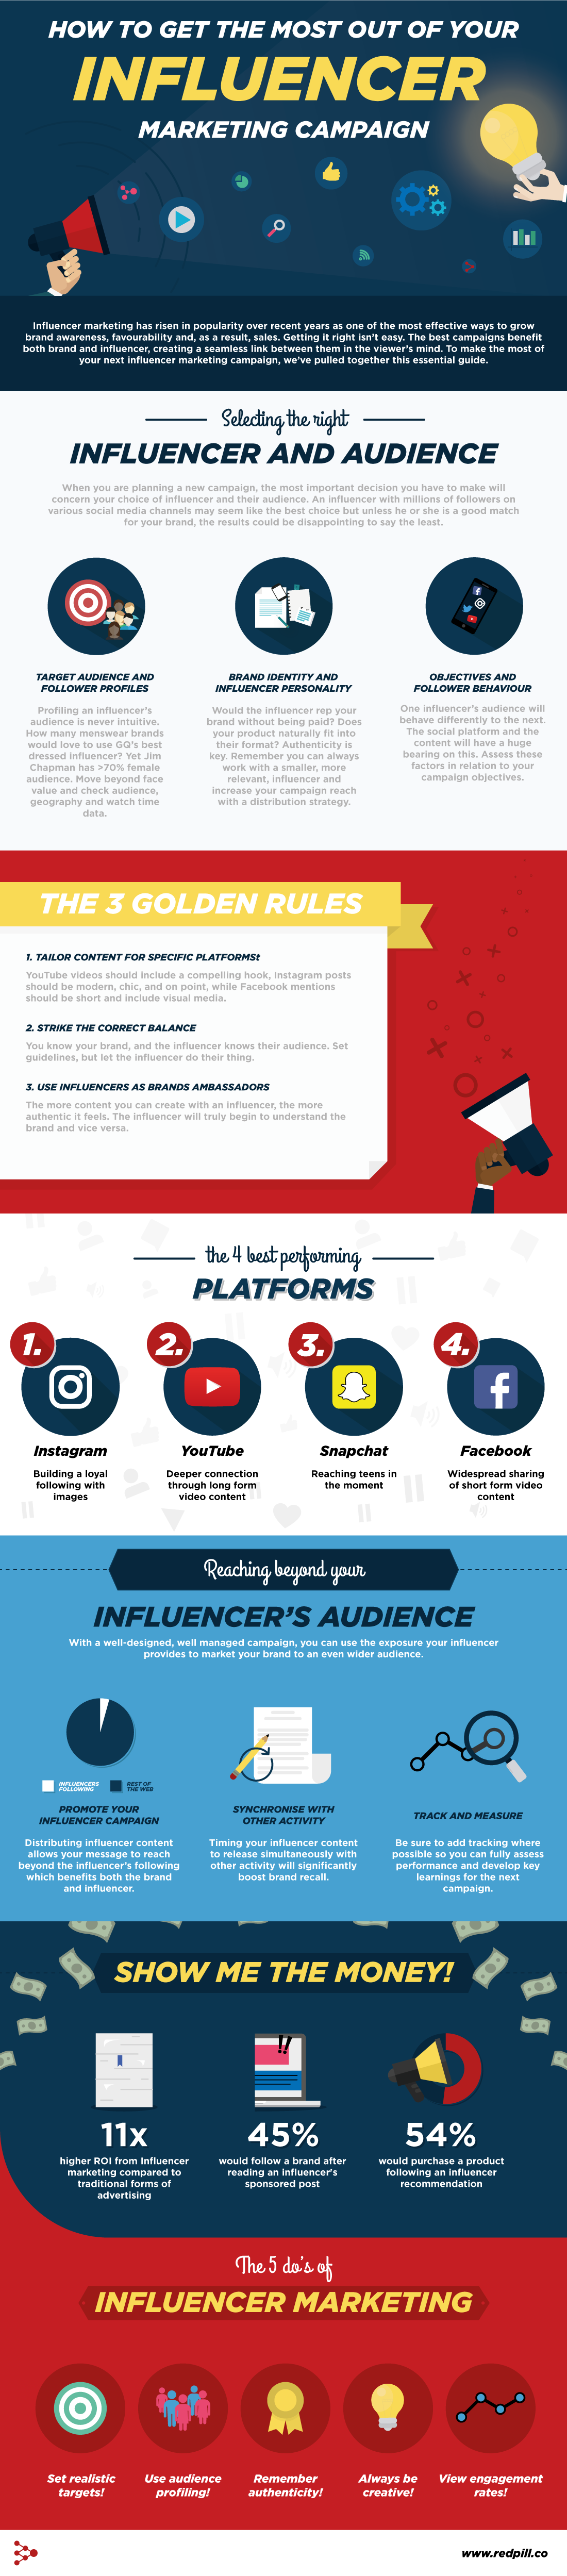 influencer-marketing-campaign-infographic by REDPILL